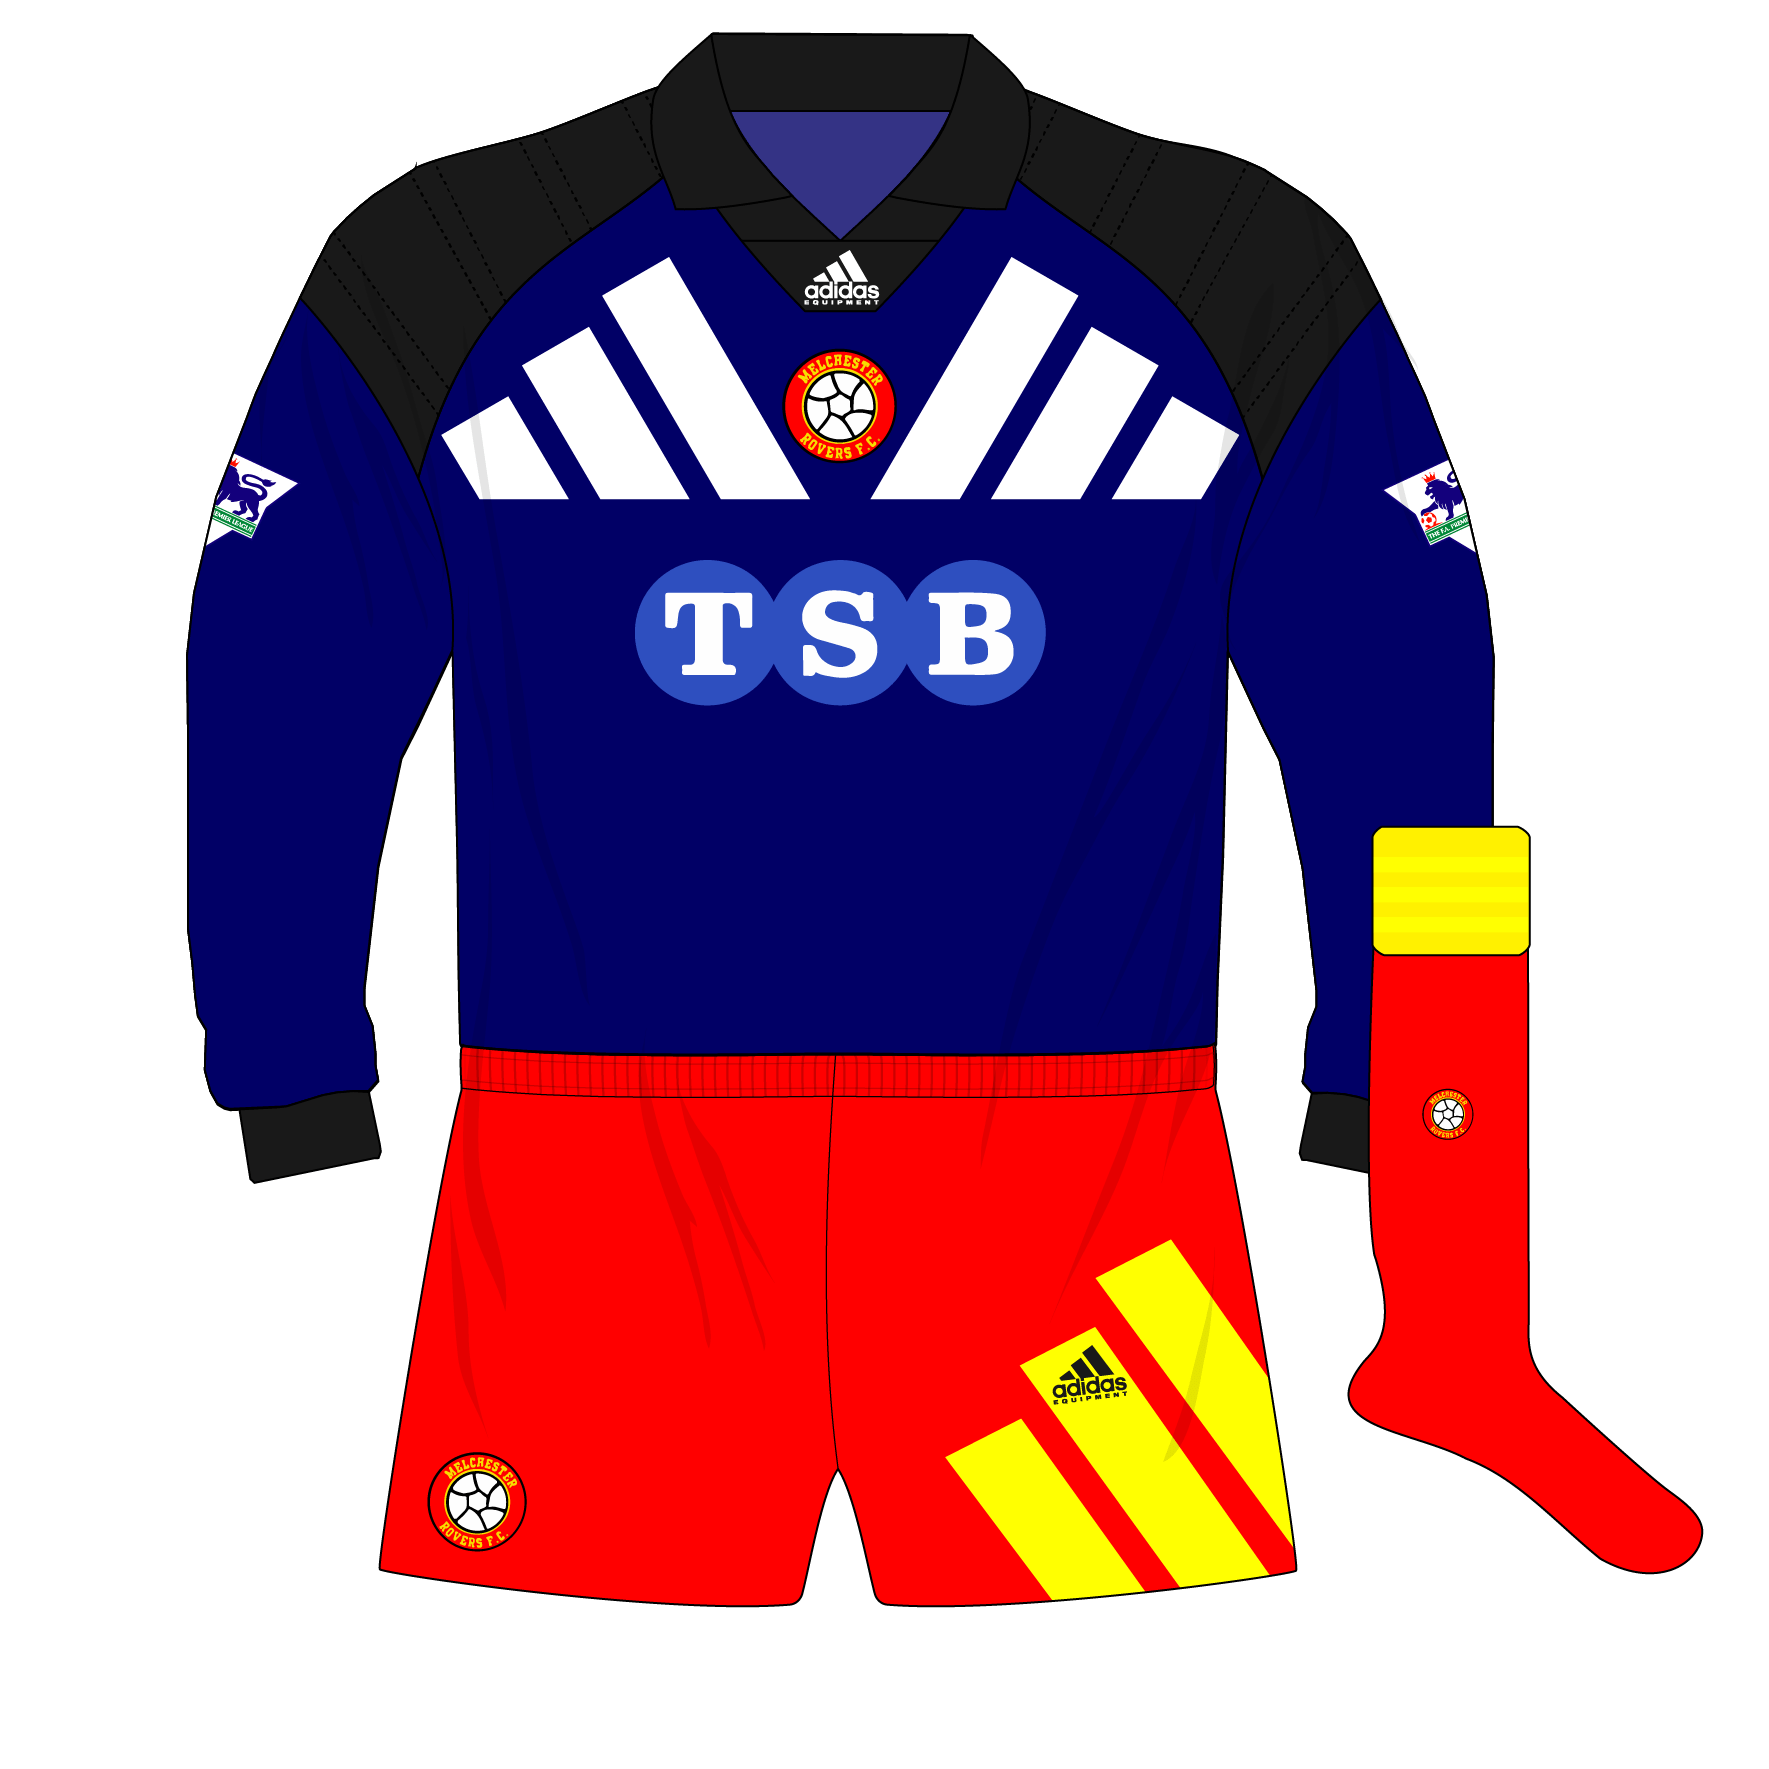 Melchester-Rovers-adidas-fantasy-1992-1993-goalkeeper-Rapper-Hardisty-01